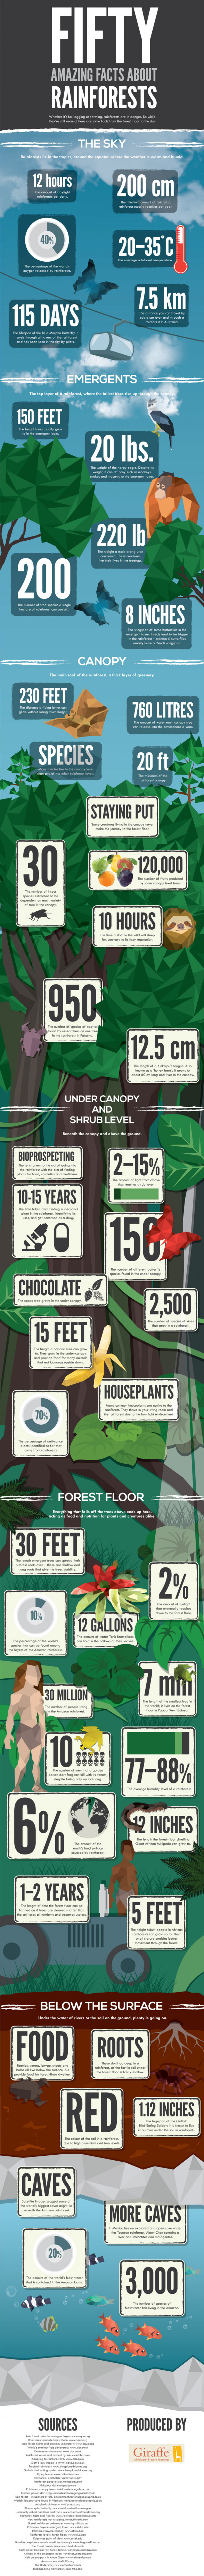 50 Incredible Facts About Rainforests